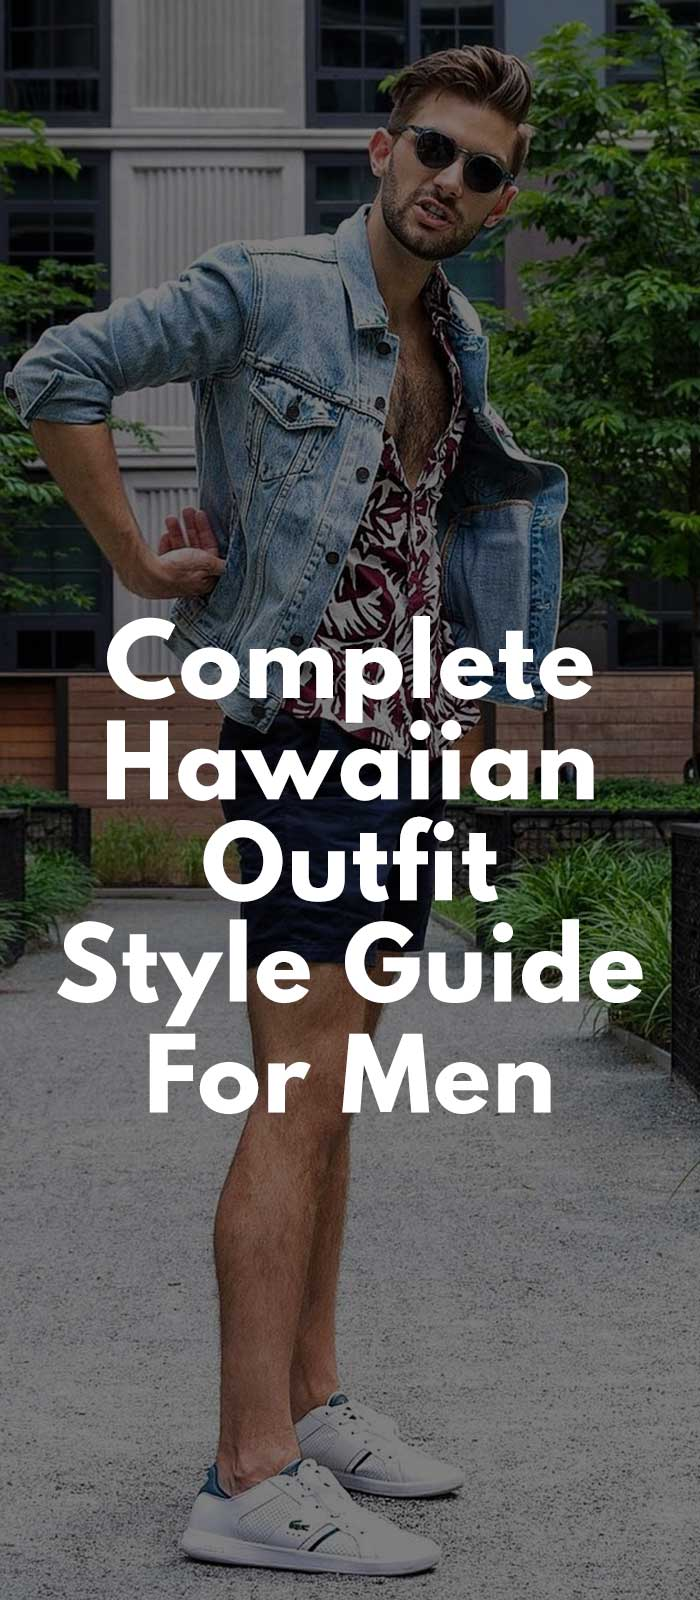 Complete Hawaiian Outfit Style Guide For Men